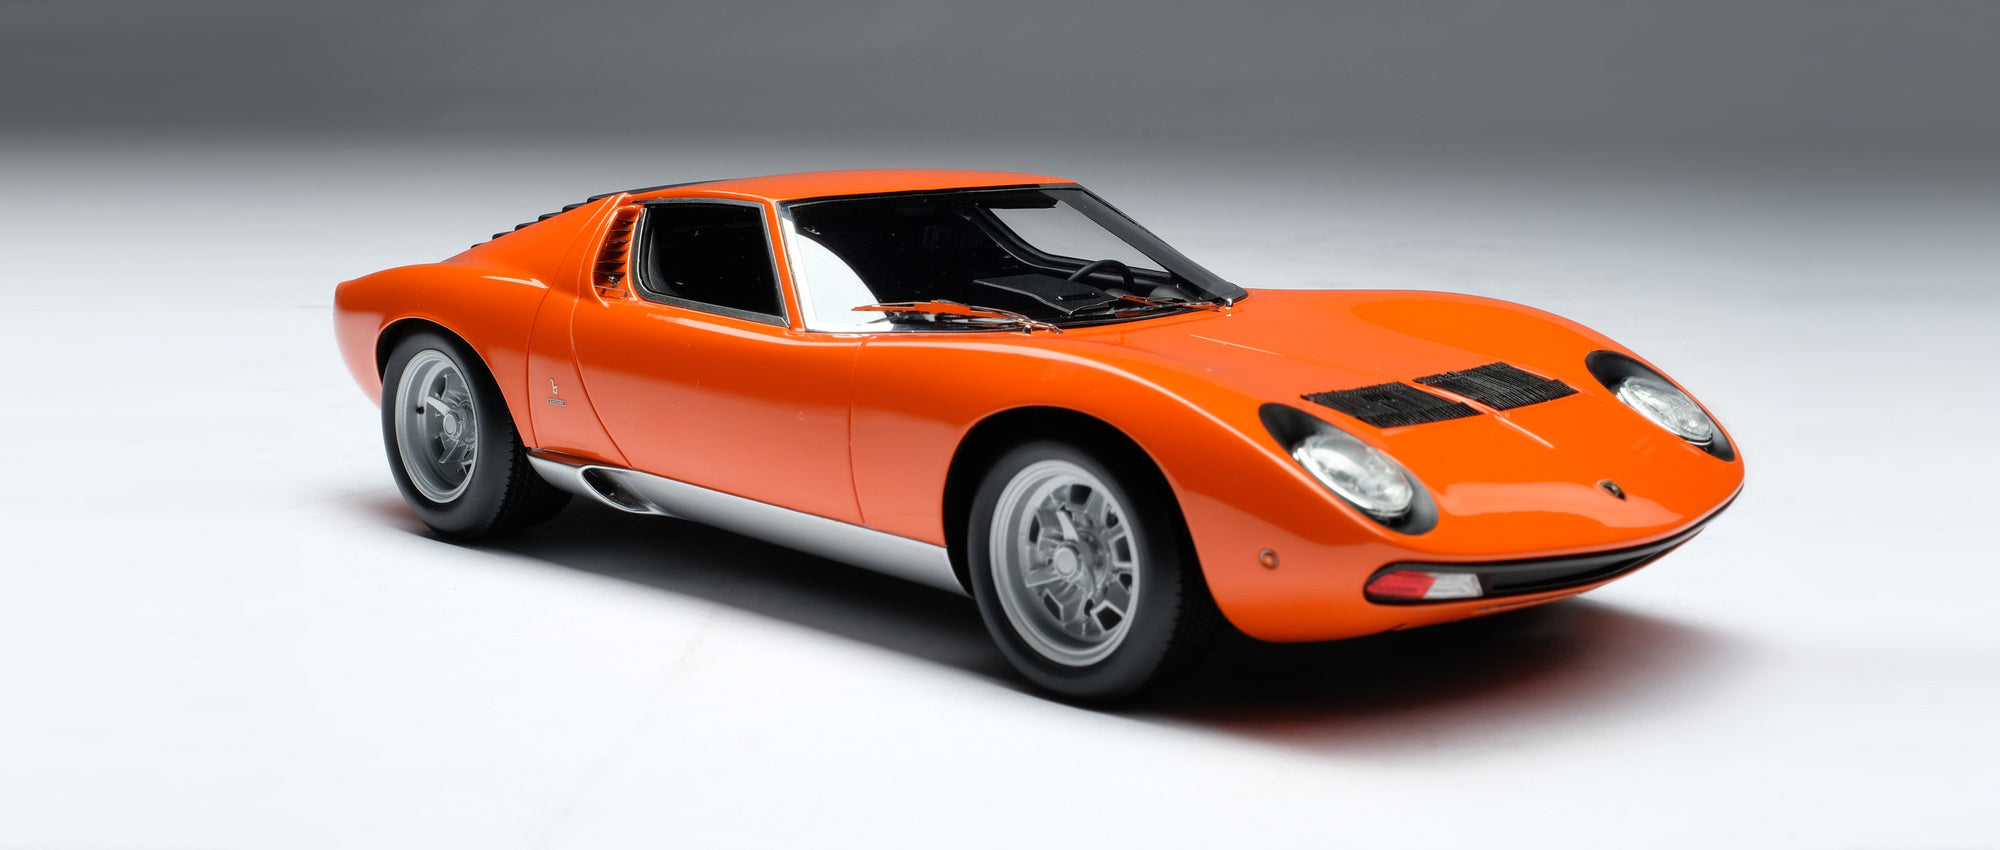 Lamborghini Miura P400 Sv Road Track By Amalgam Collection Ltd